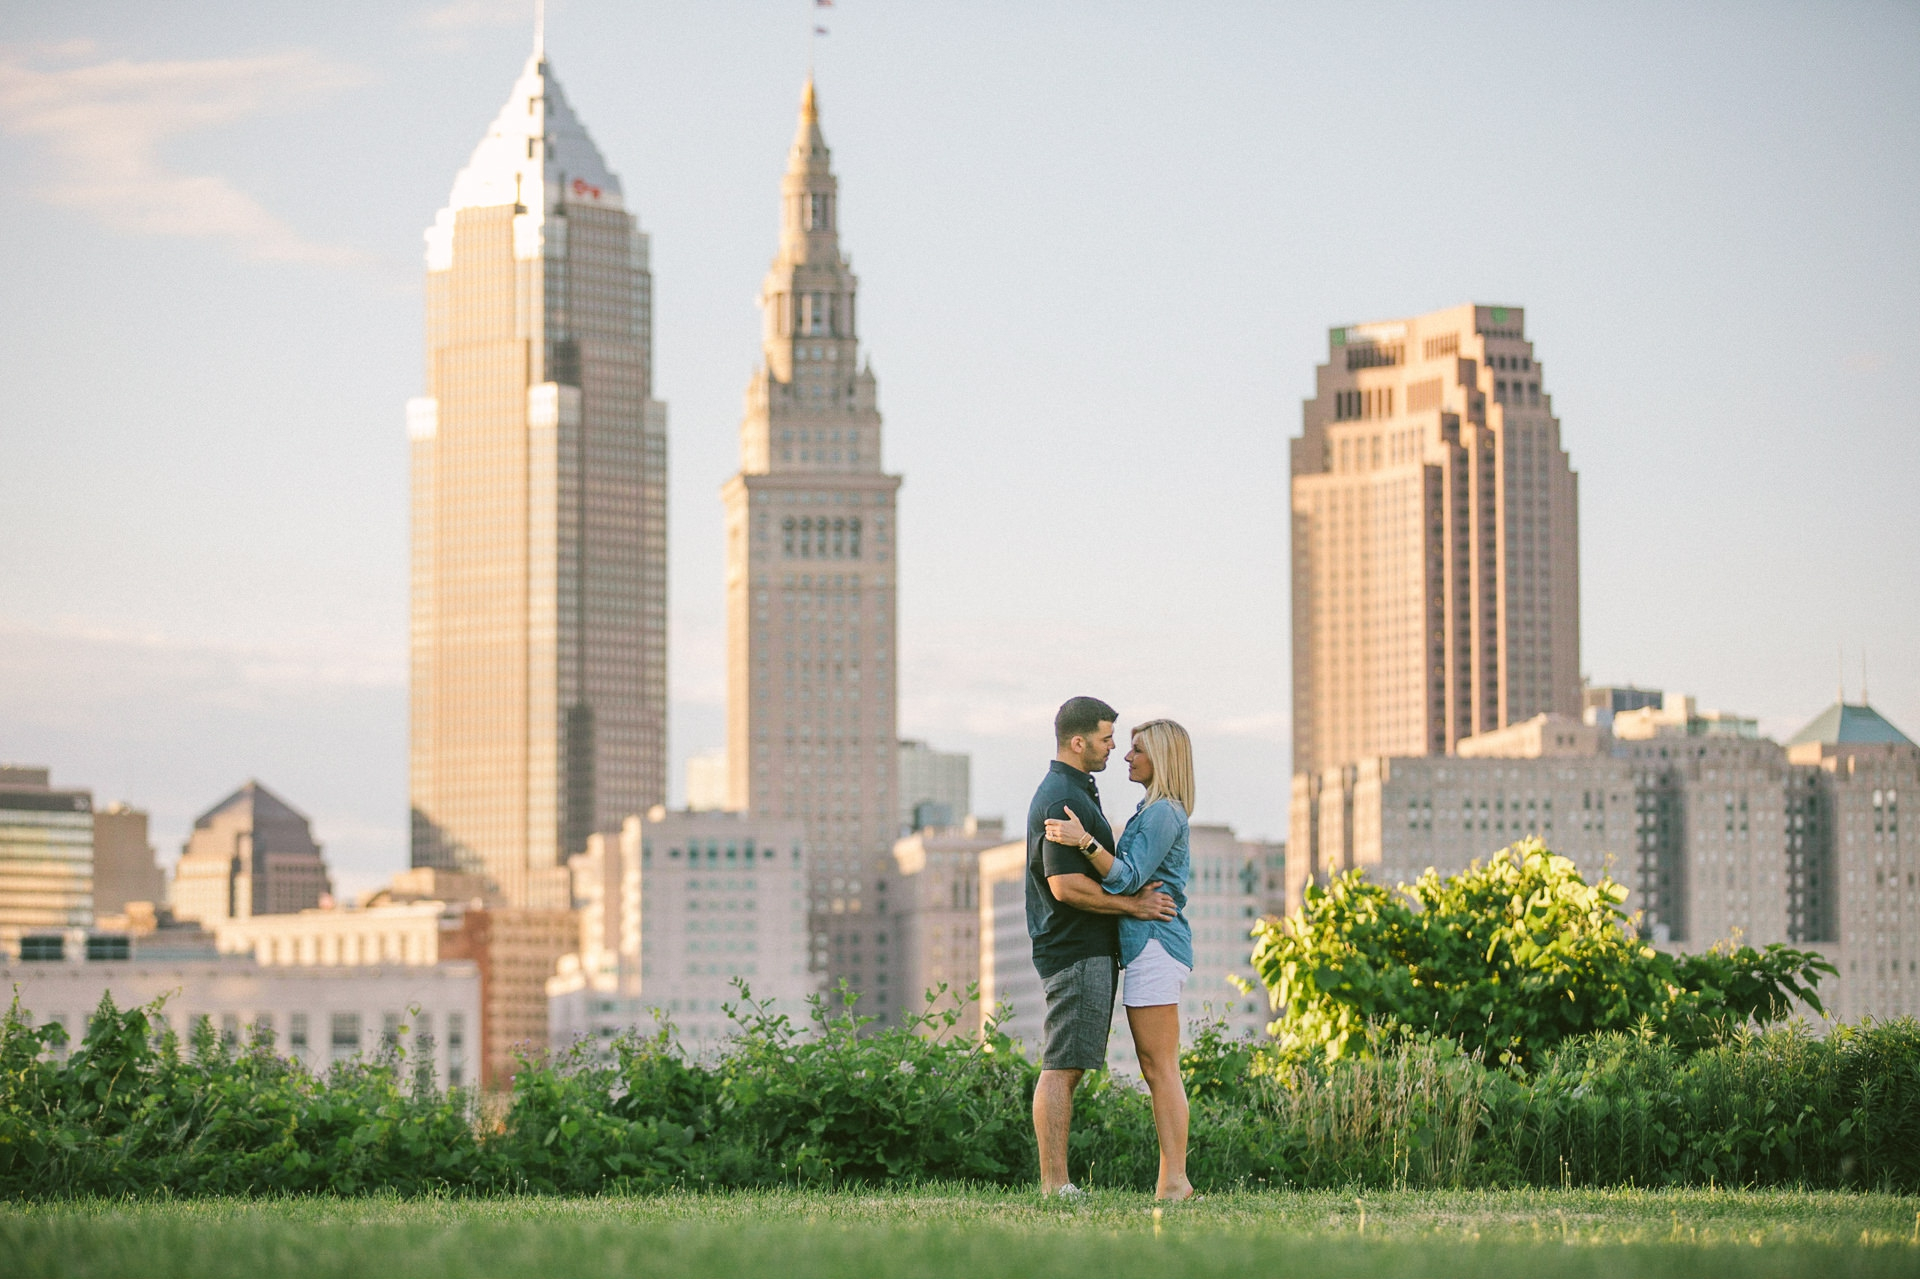 Sara Shookman Angelo DiFranco Engagement photos in cleveland by too much awesomeness photography 19.jpg